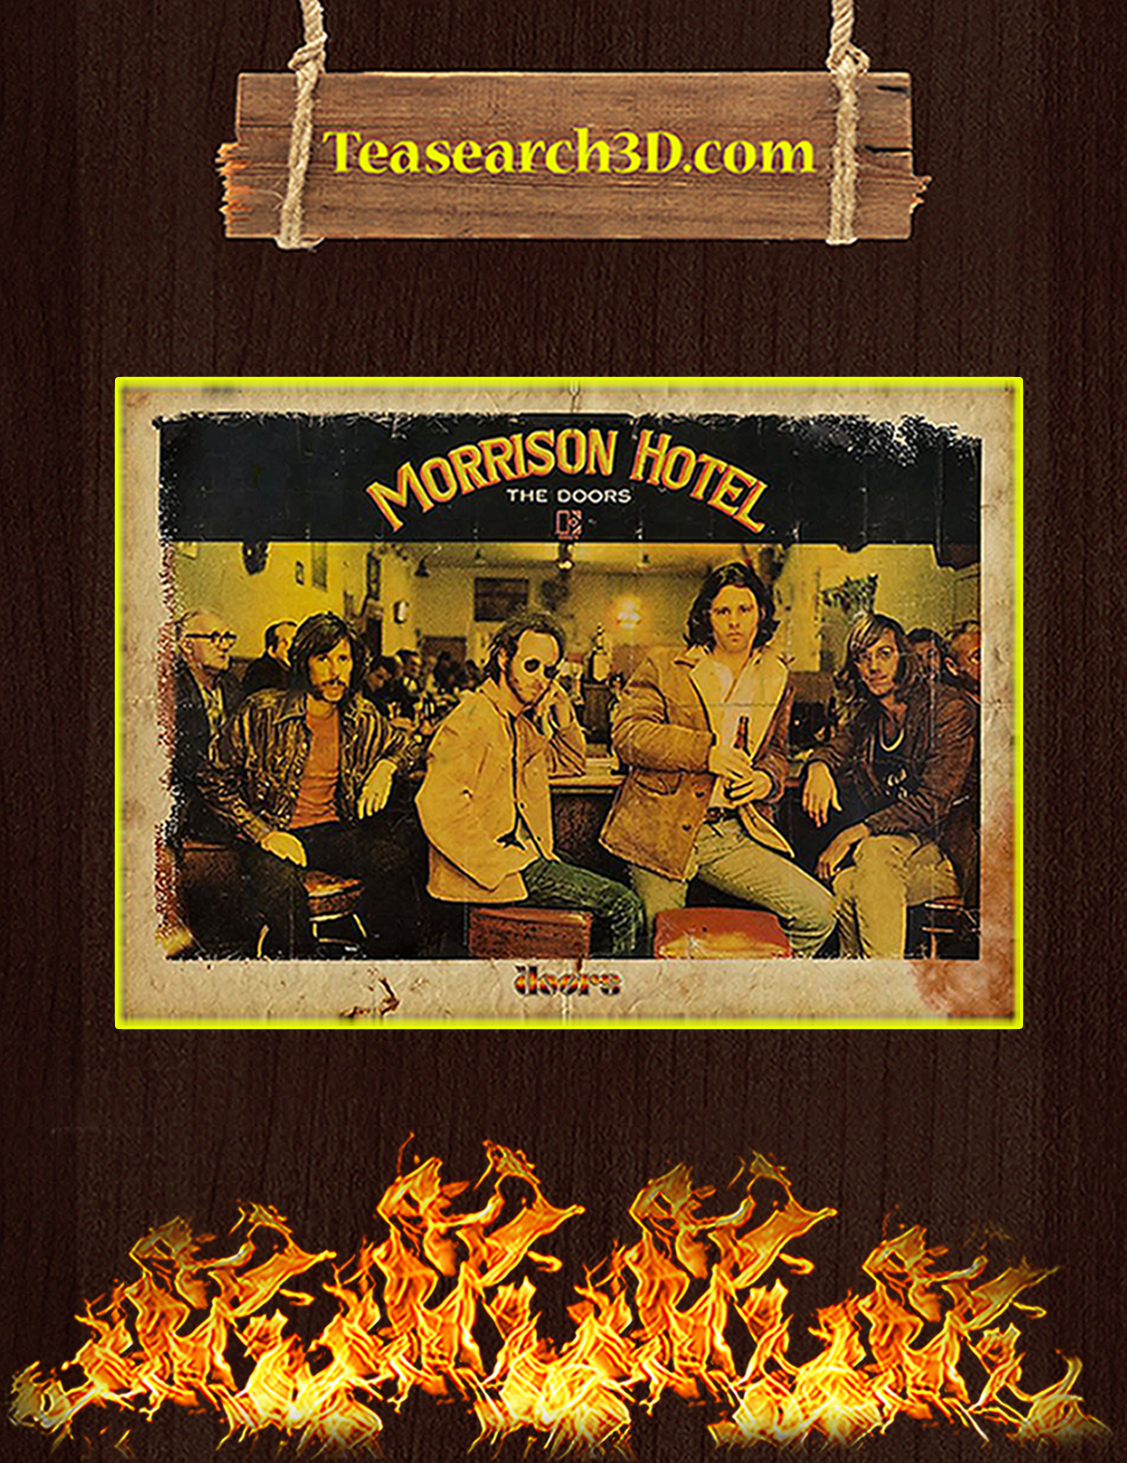 Morrison hotel the doors poster A3